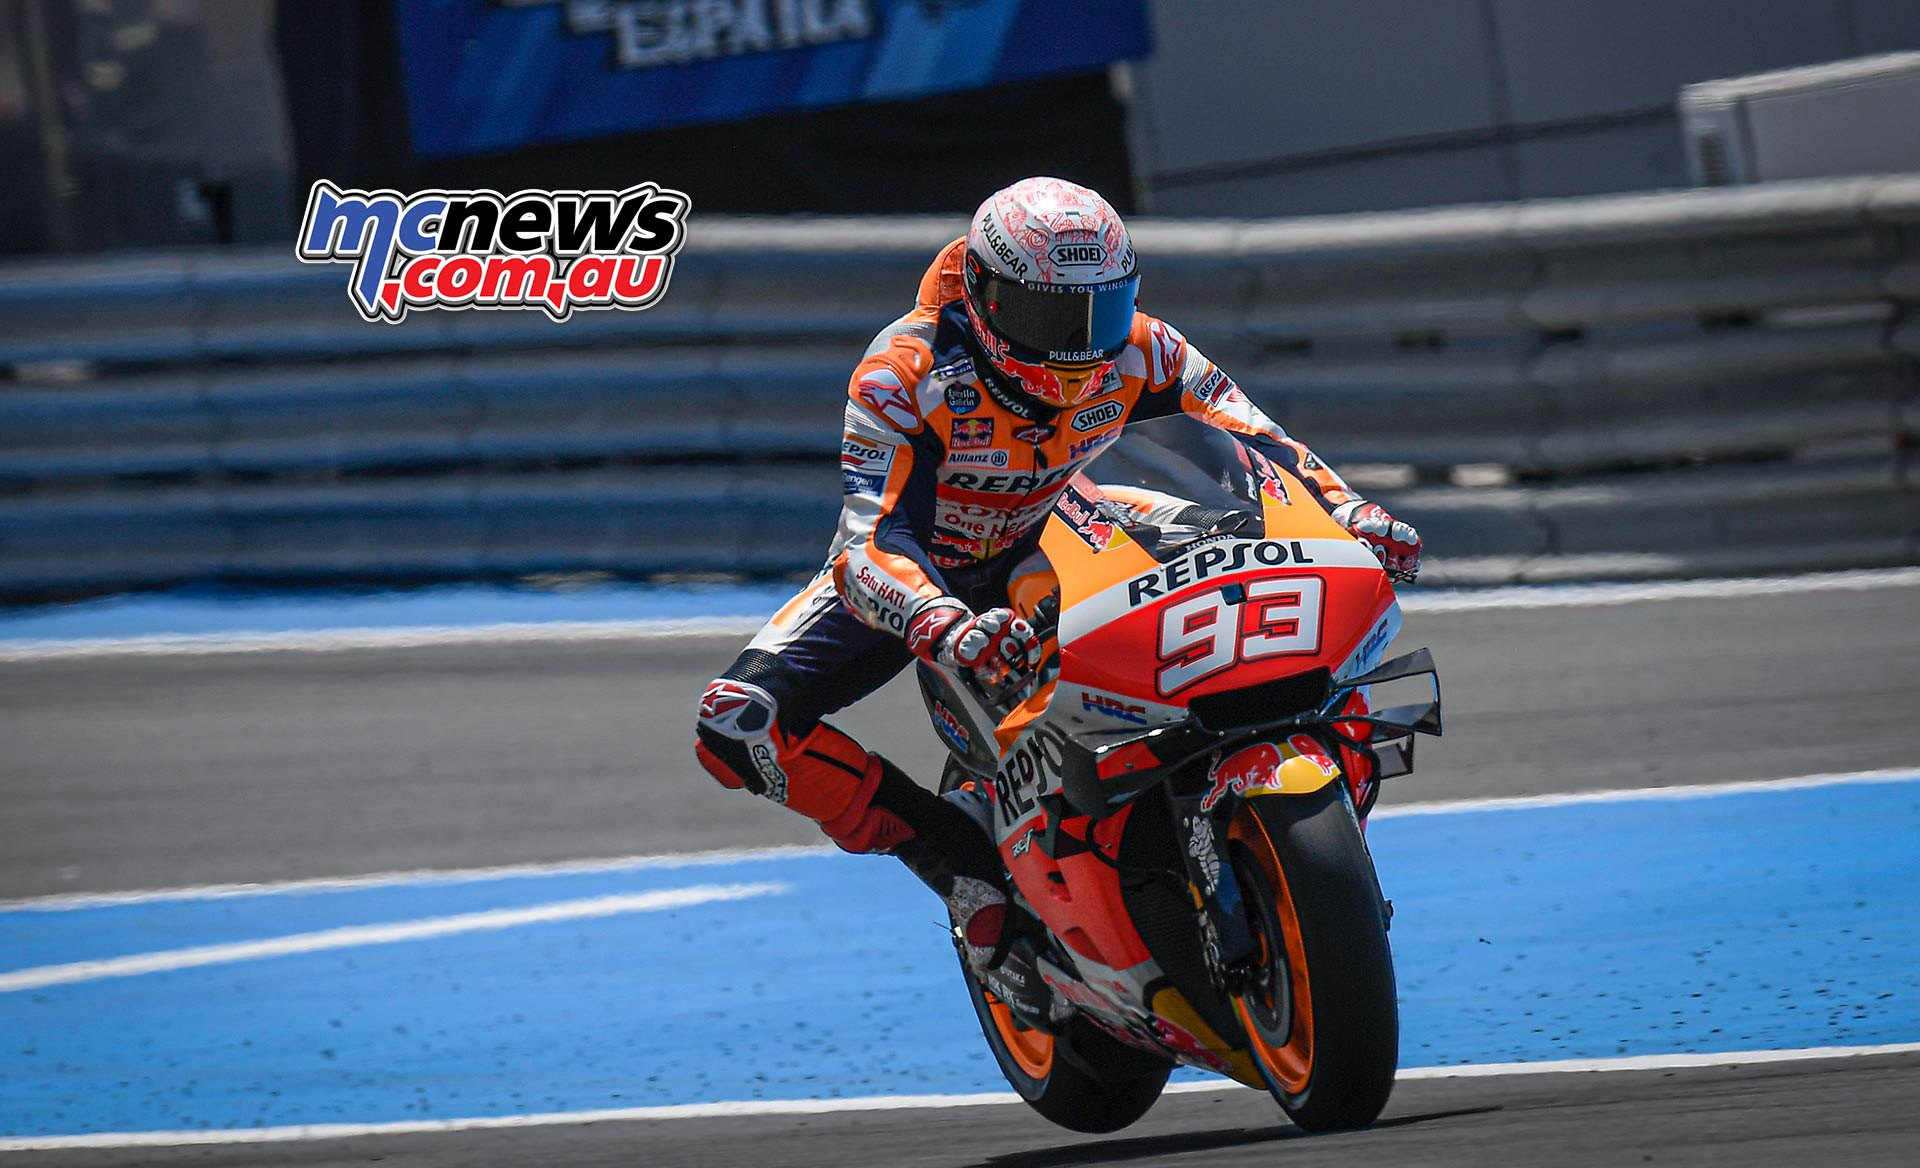 Jerez Day One Times Quotes Reports Images All Classes Motorcycle News Sport And Reviews